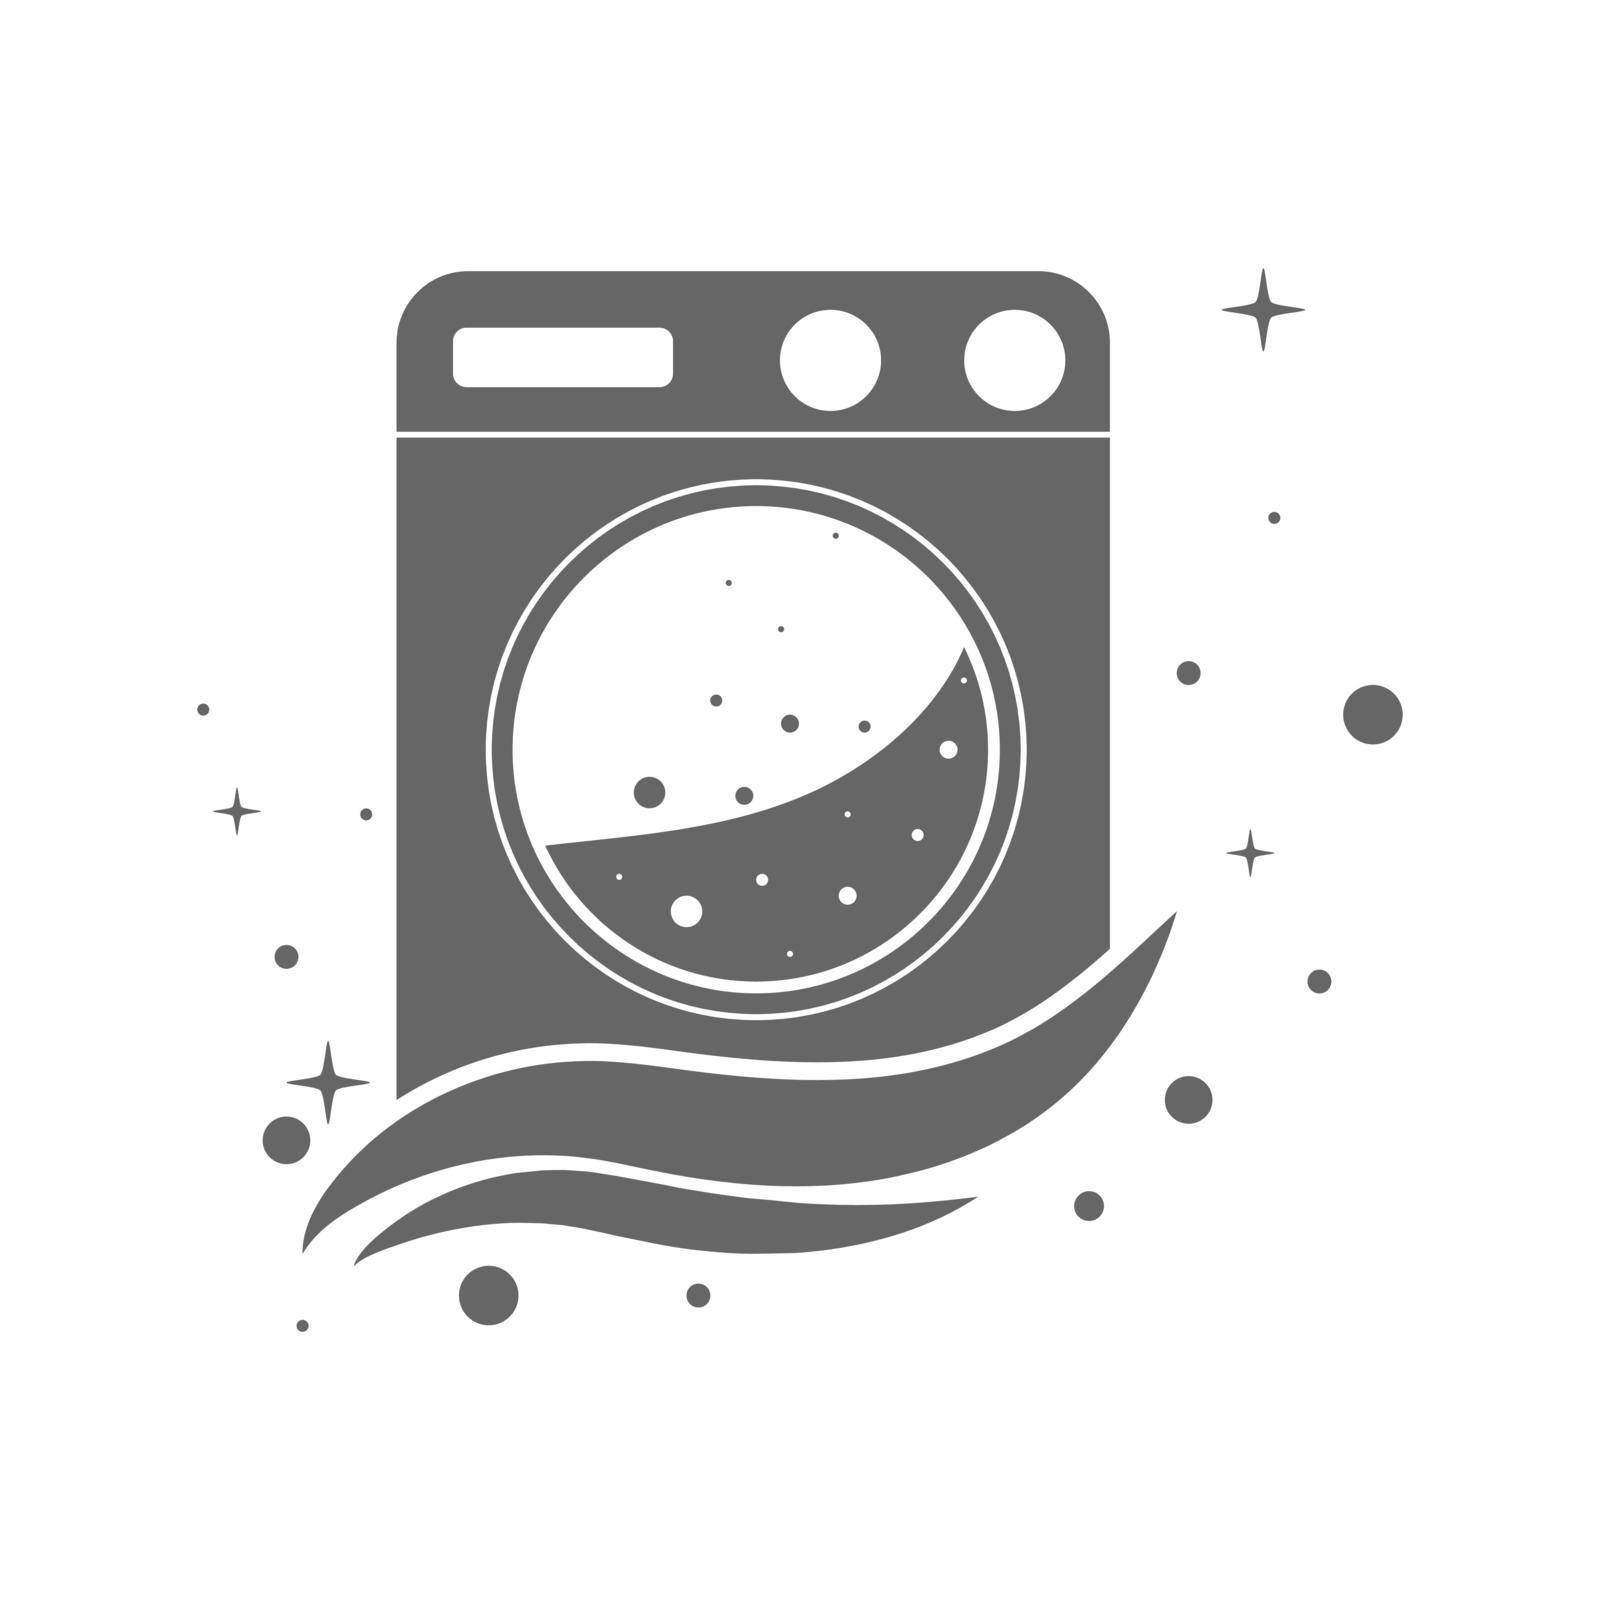 template for a laundry or dry cleaning logo. Blank for a logo, brand, label by Grommik